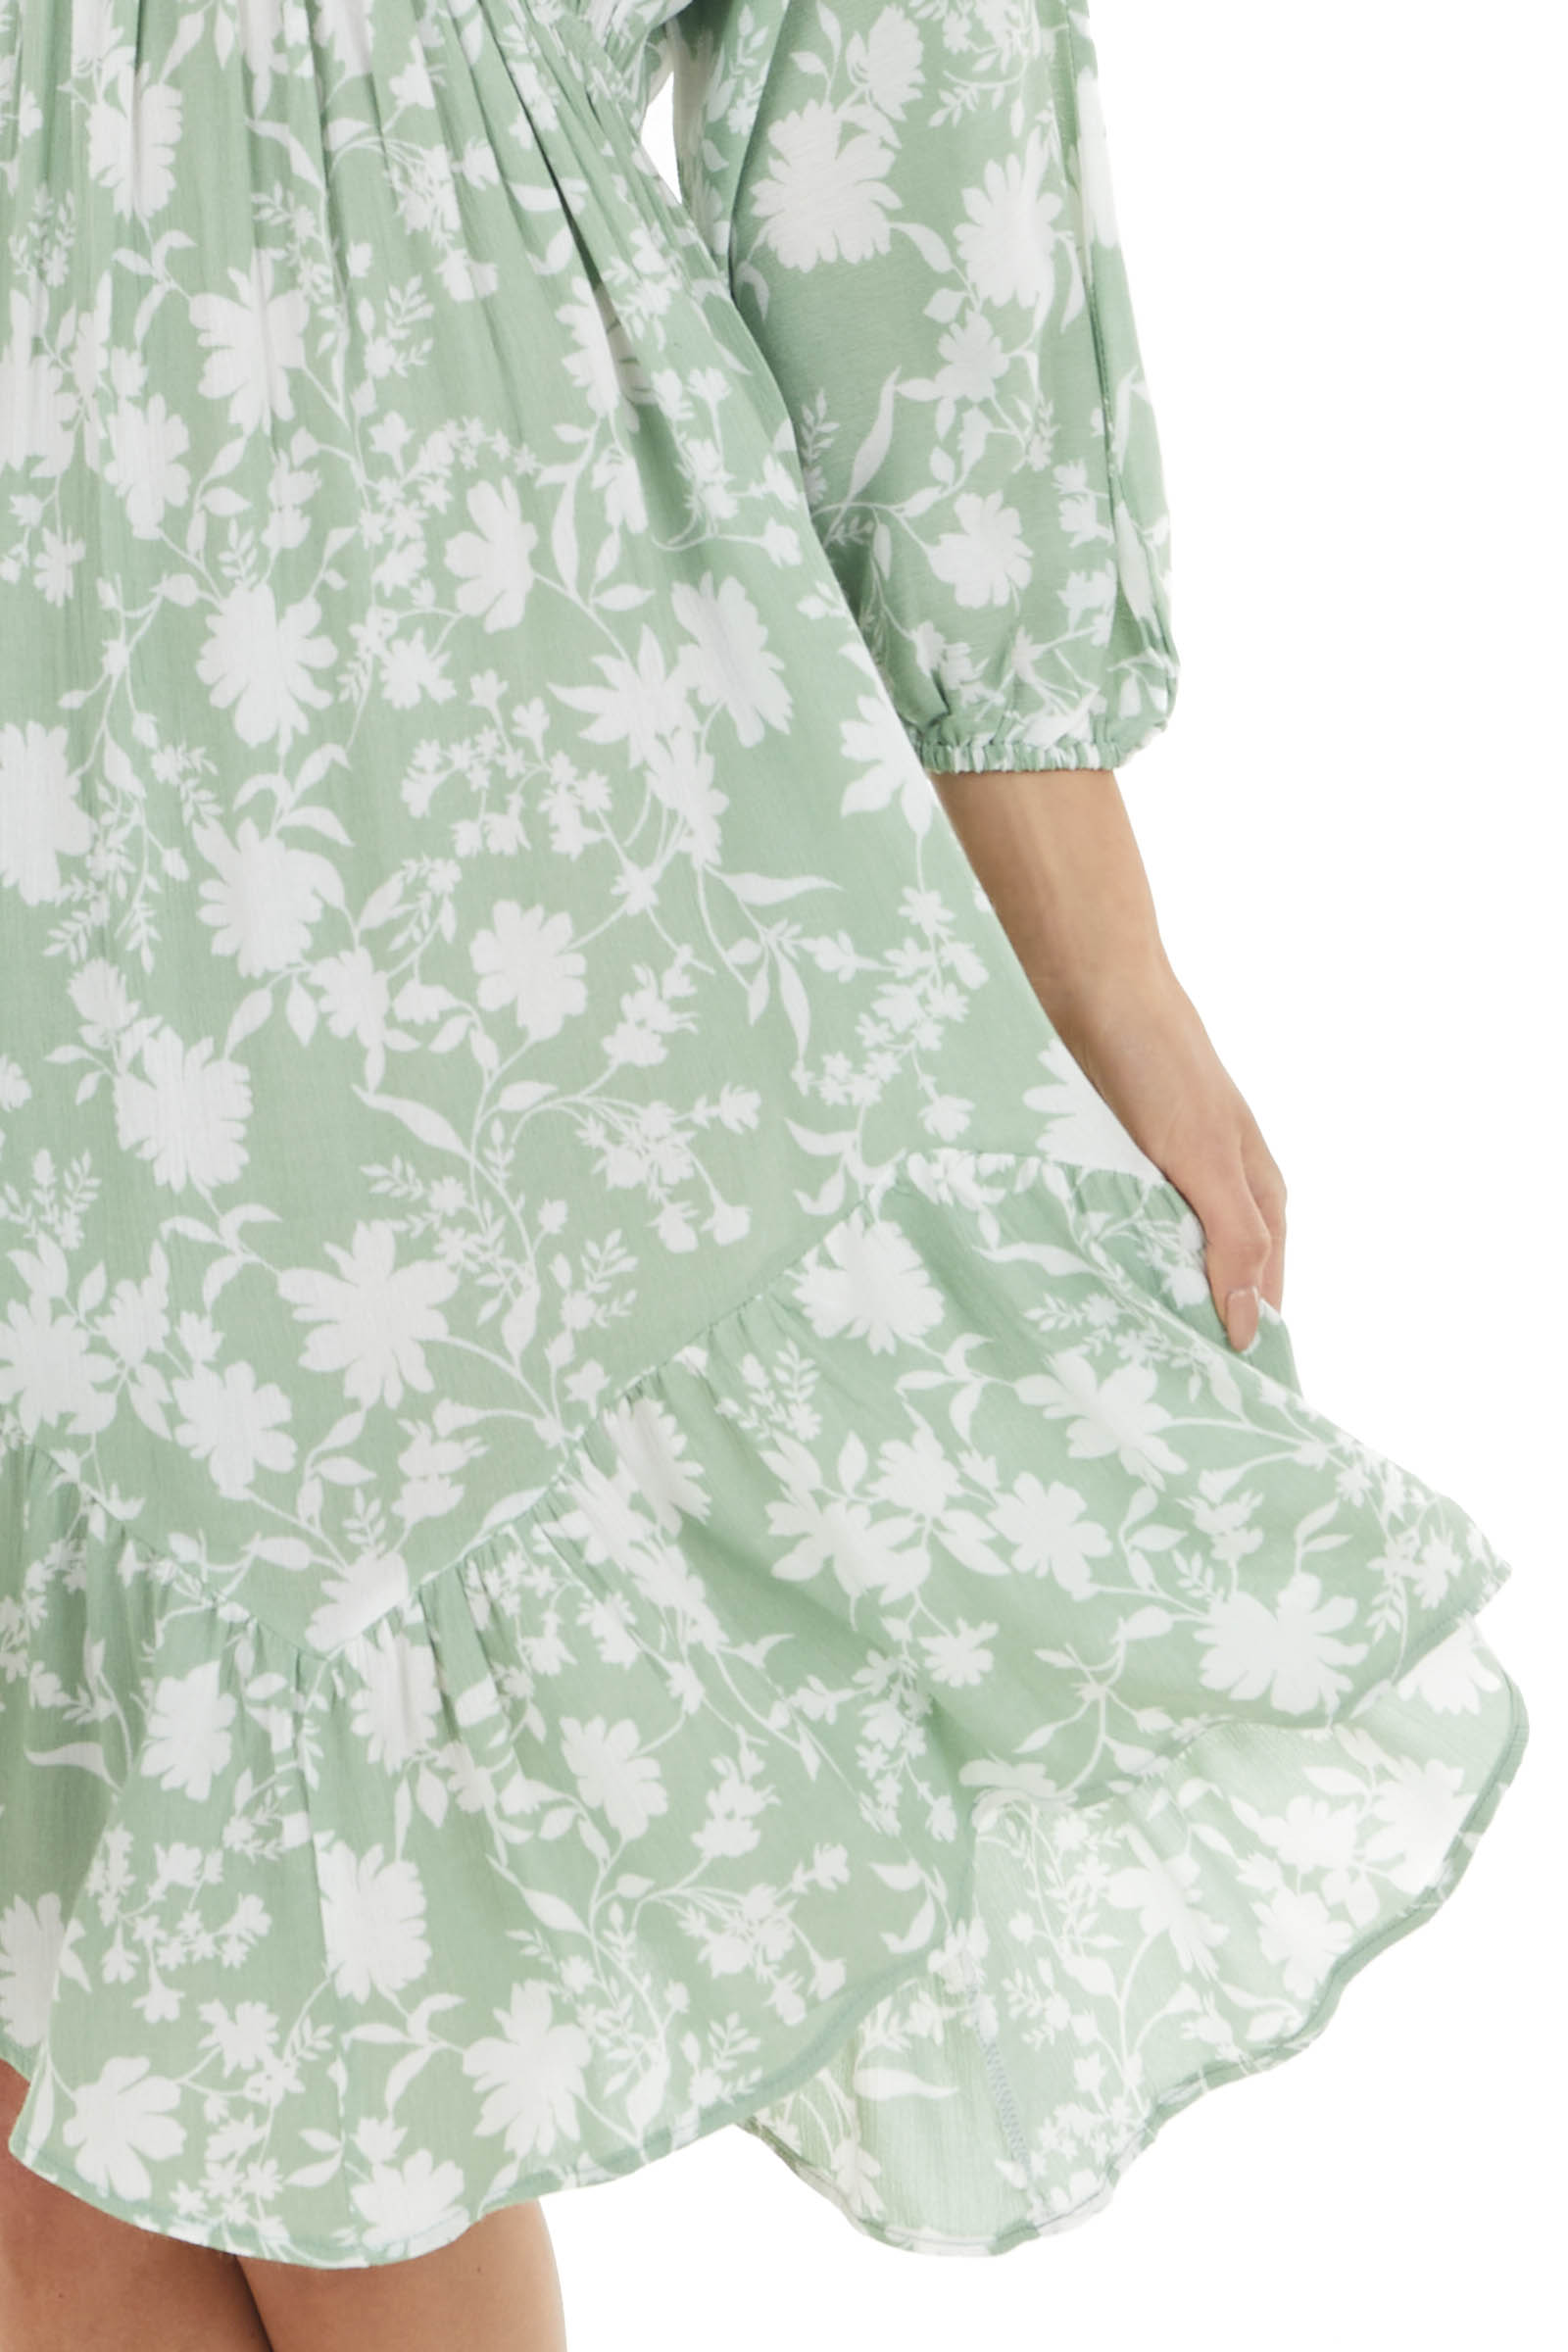 Pistachio and White Floral Dress with Bubble Sleeves